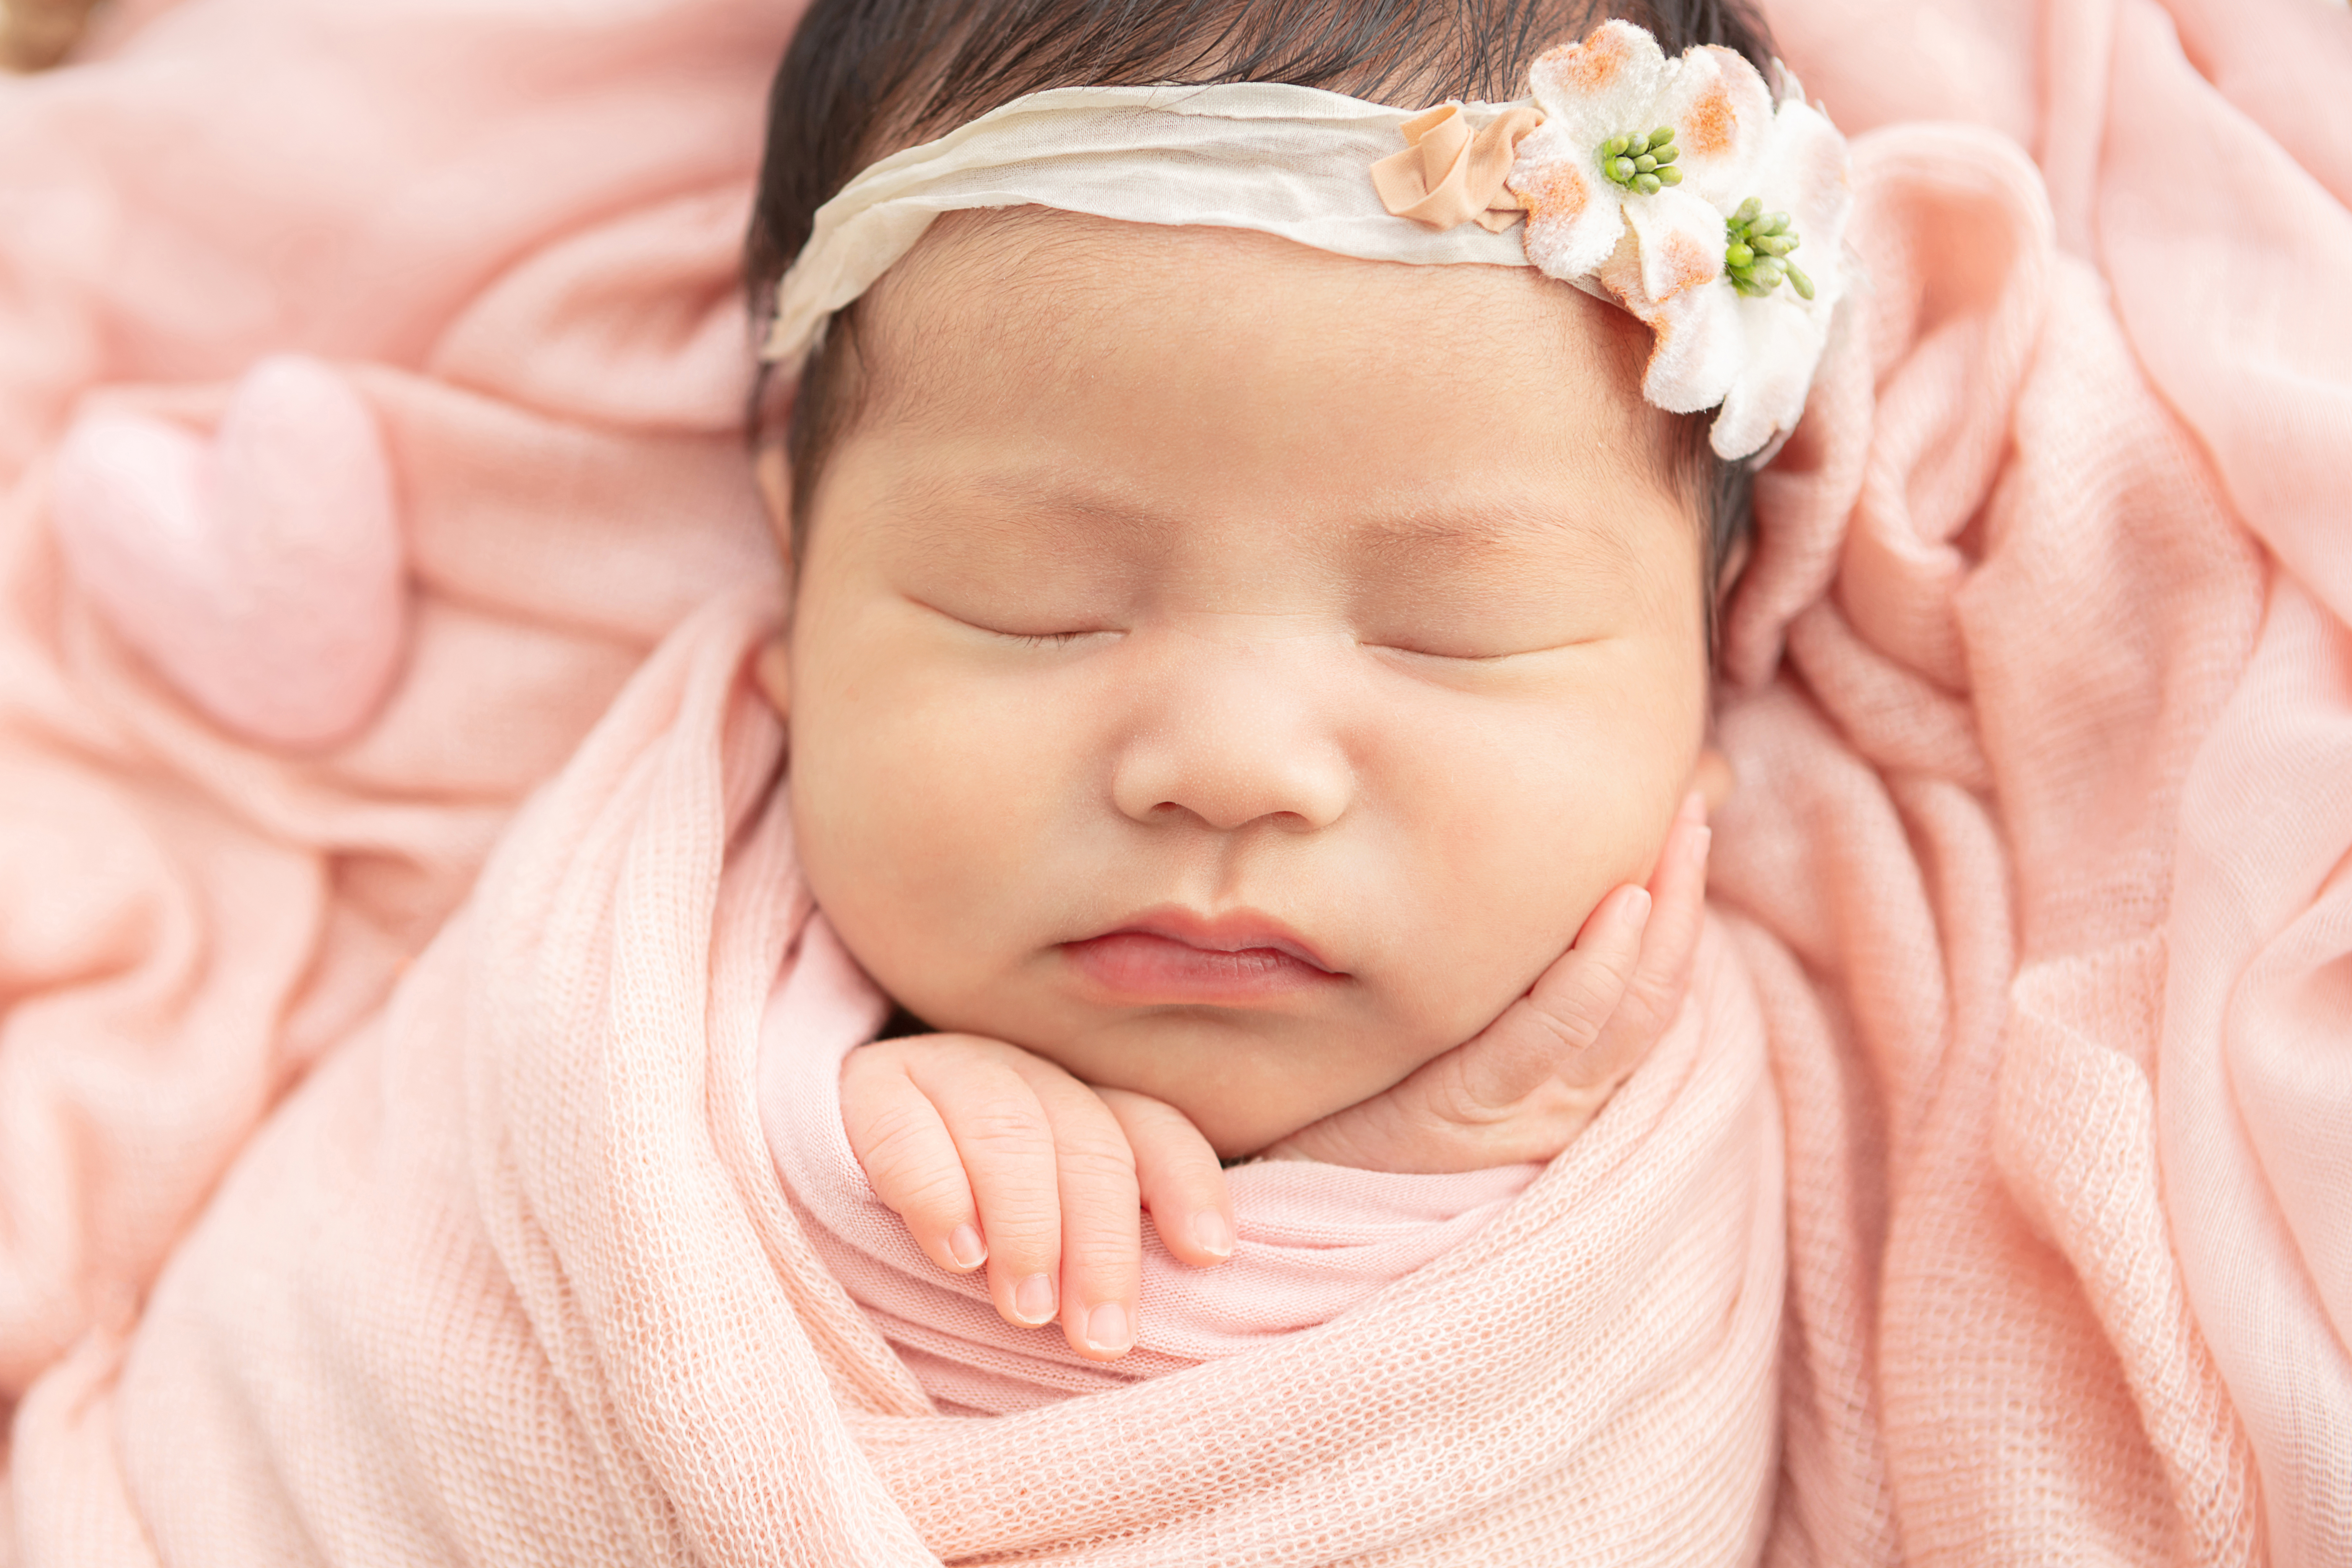 sweet newborn baby girl wearing a muslin floral headband, with her hands delicately tucked in a peachy pink swaddle blanket